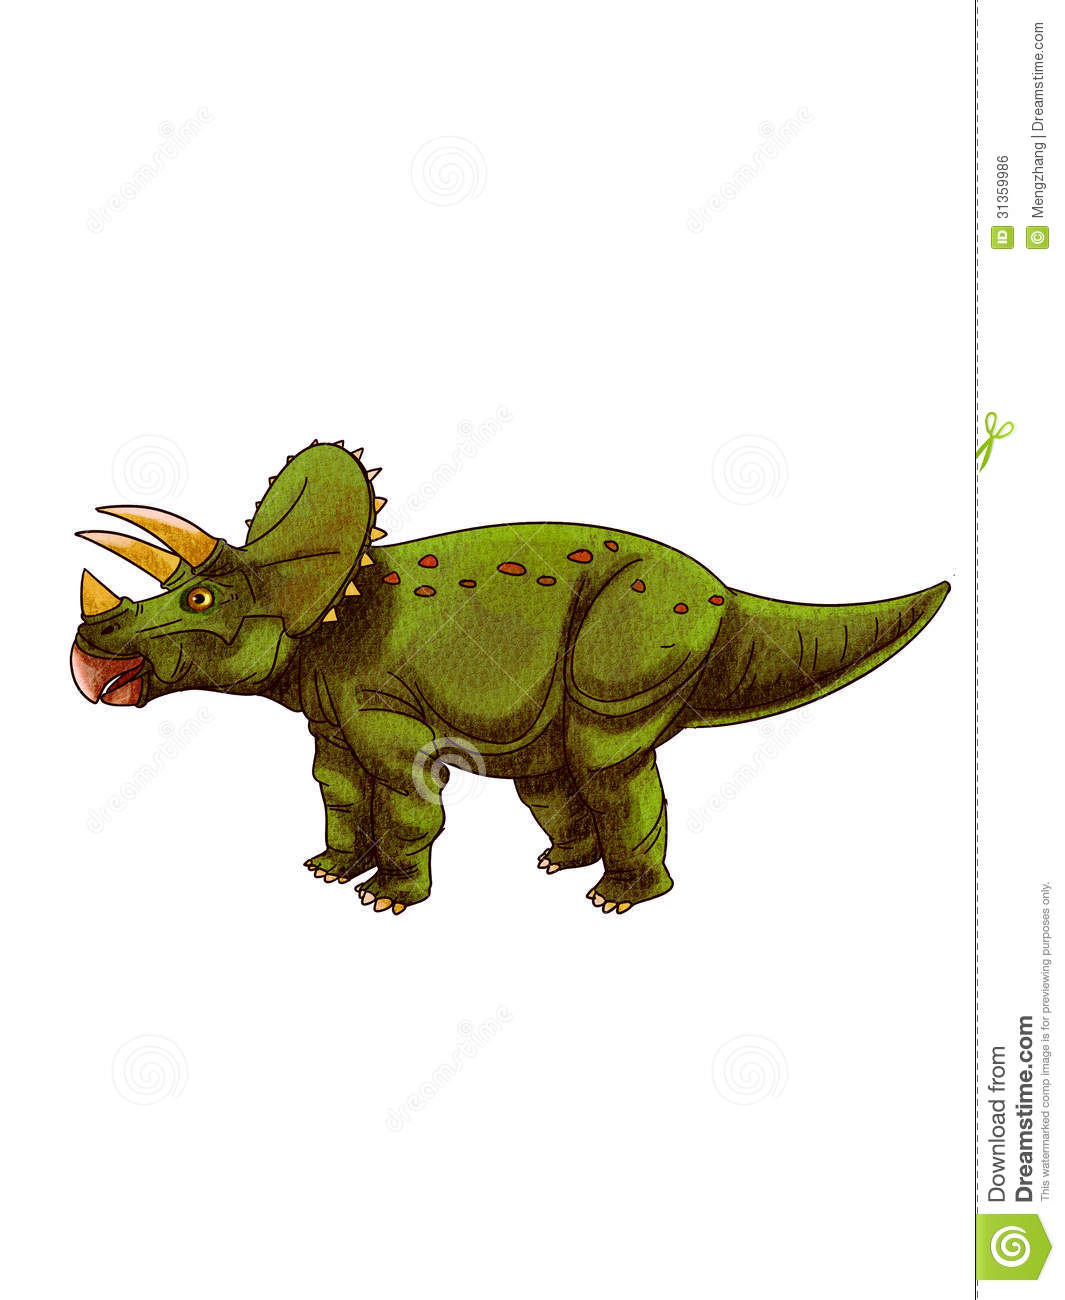 Dinosaurs:triceratops Royalty Free Stock Image - Image: 31359986